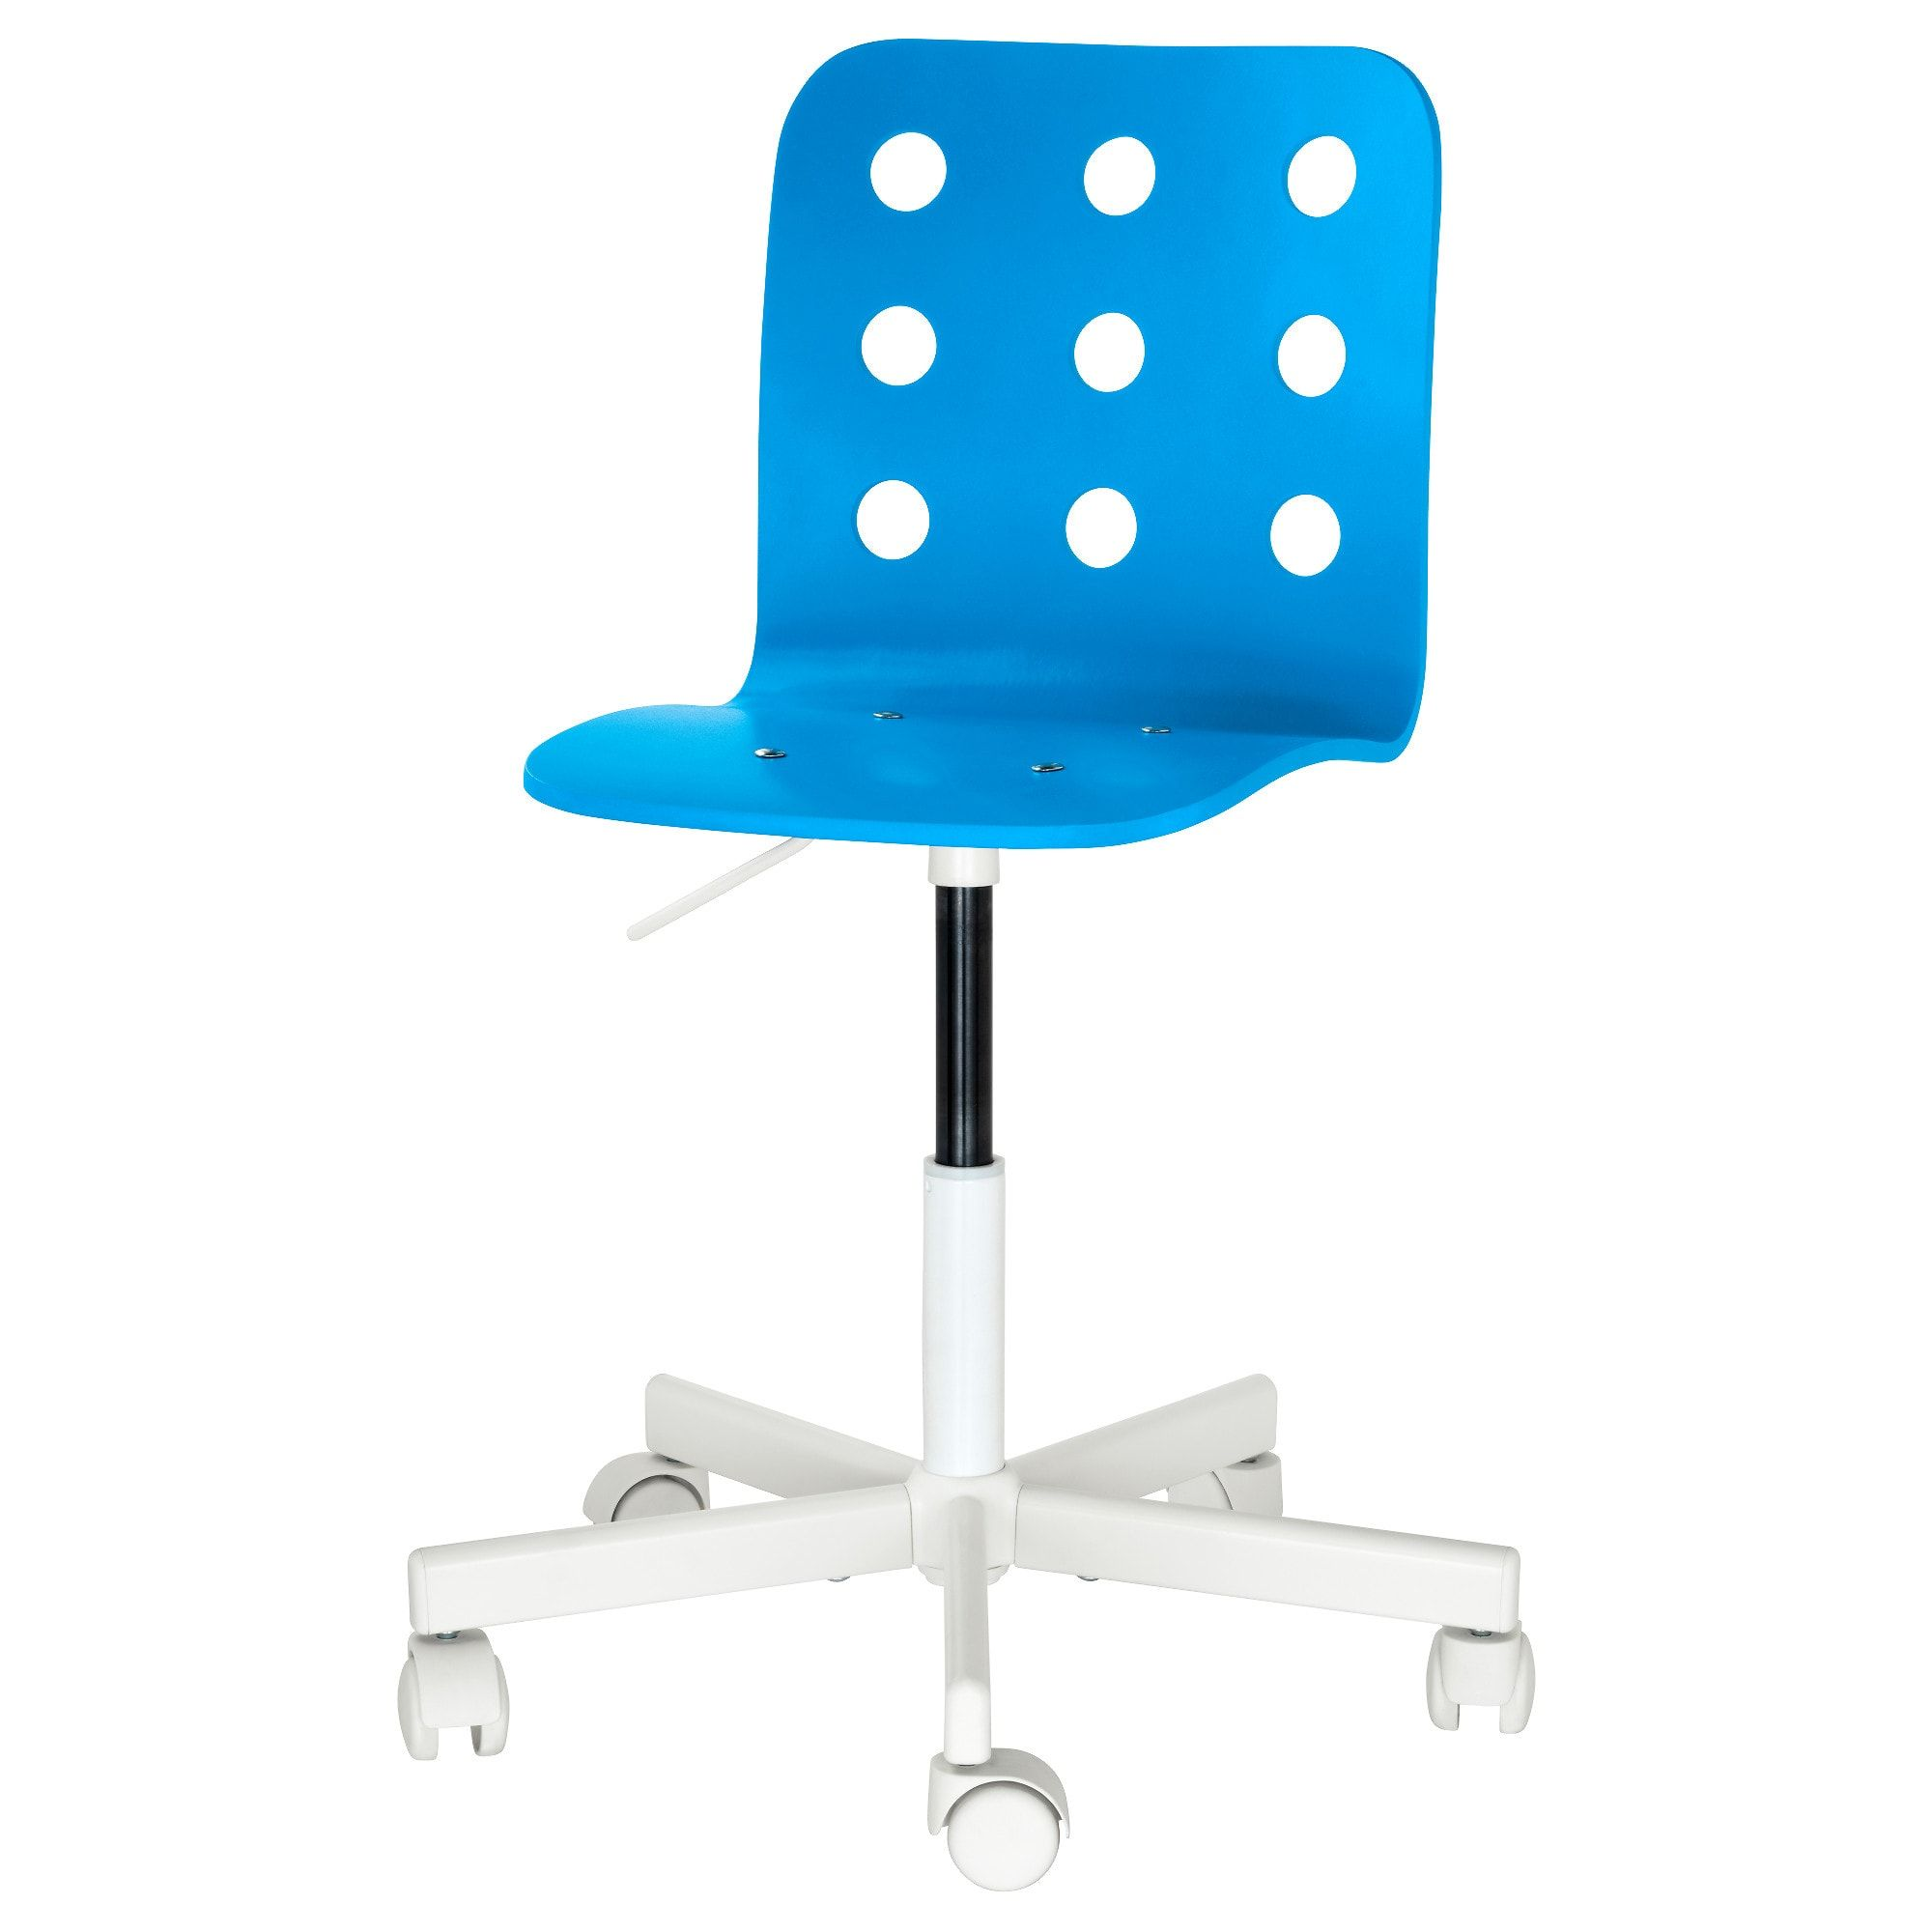 Us Furniture And Home Furnishings Kids Desk Chair Desk Chair